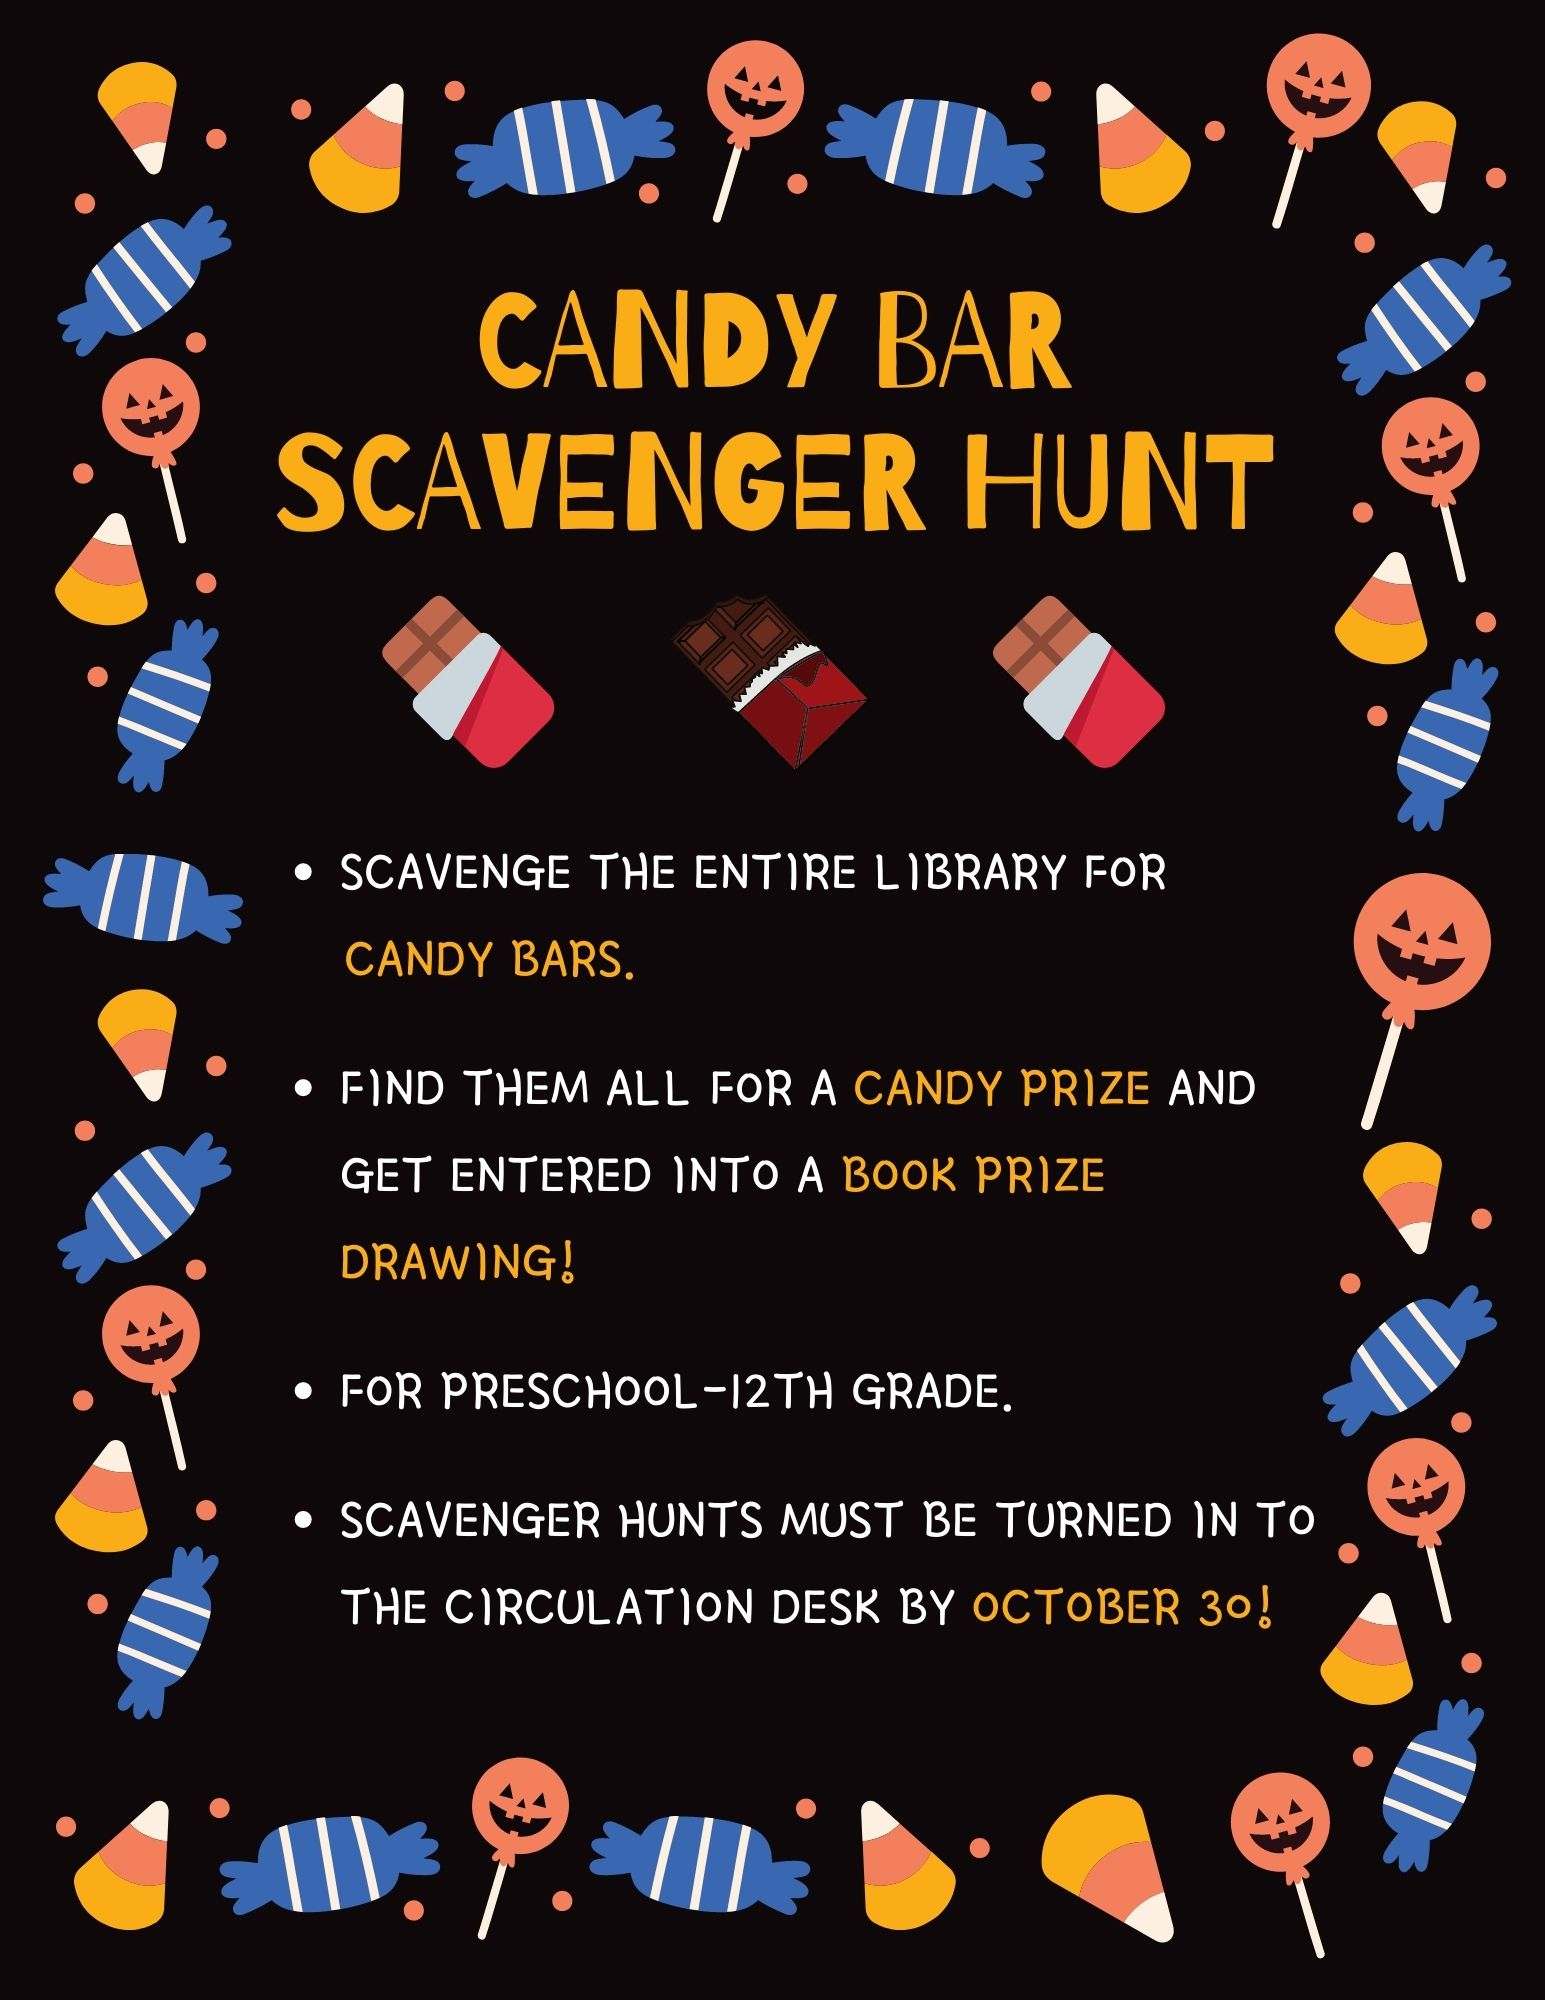 Scavenge the entire library for Candy Bars.  Find them all for a candy prize and get entered into a book prize drawing!  For preschool-12th grade.  Scavenger hunts must be turned in to the circulation desk by October 30!